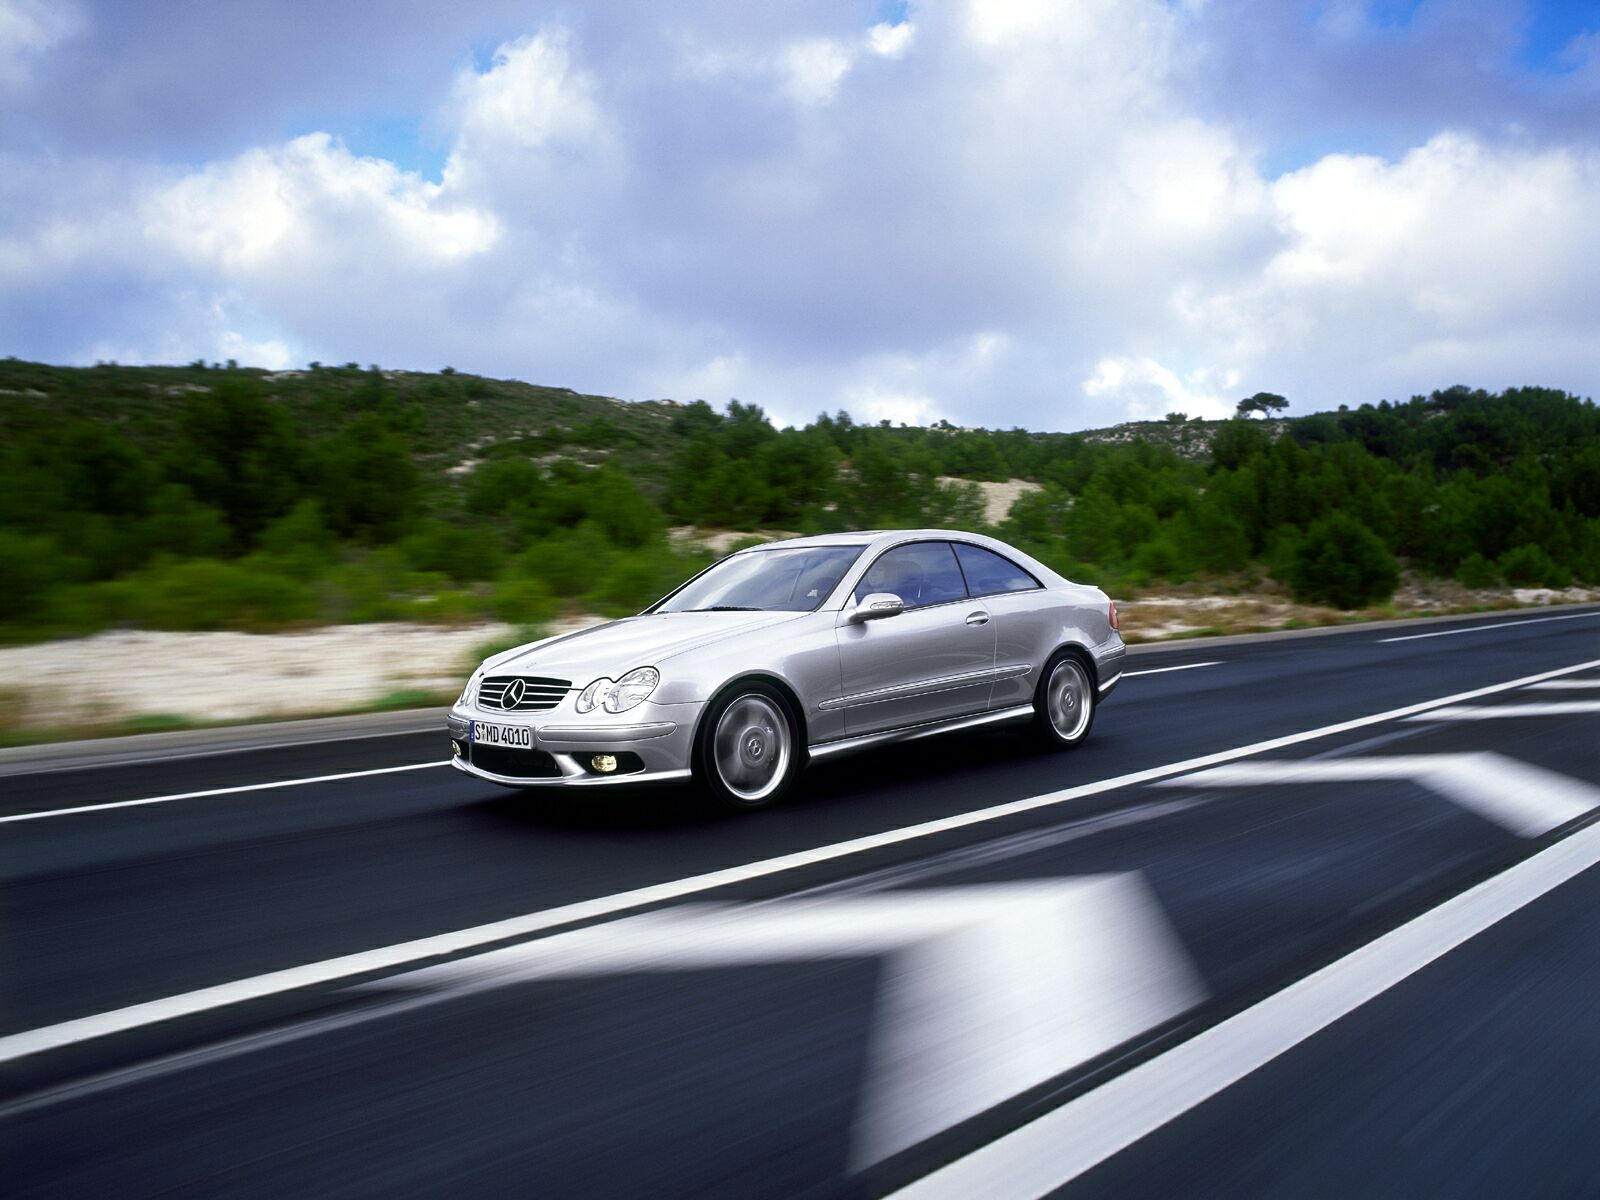 Mercedes Benz CLK 55 7